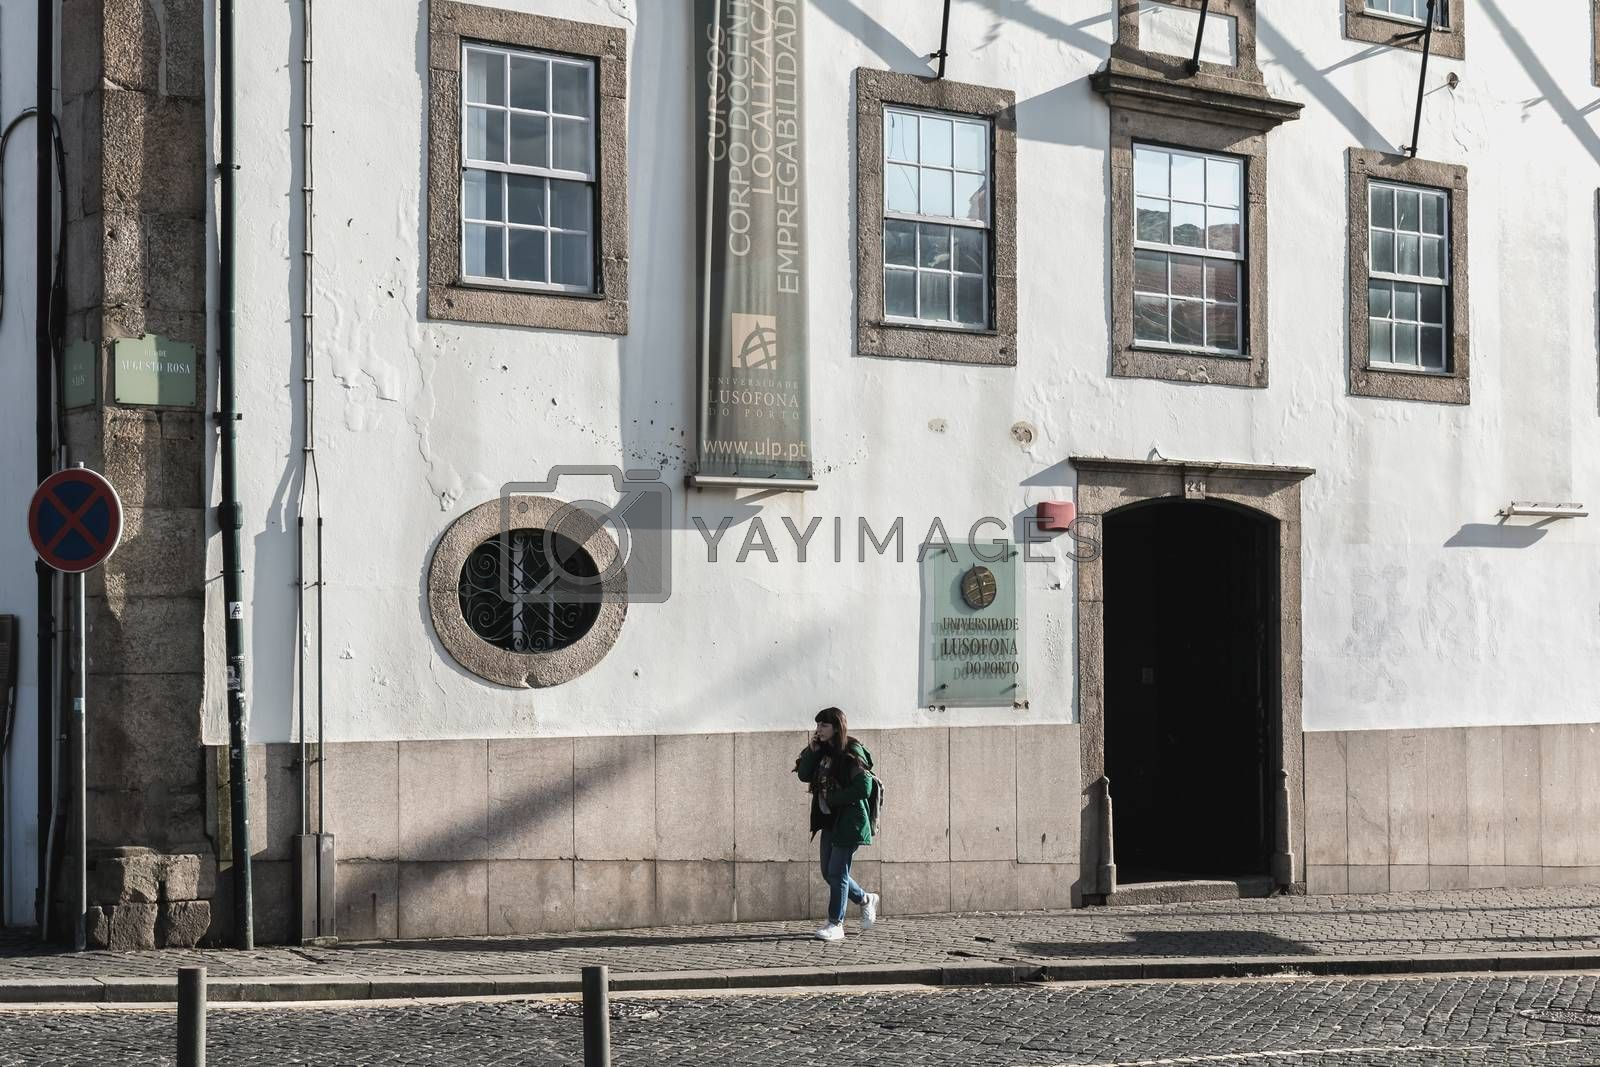 Porto, Portugal - November 30, 2018: Storefront and architectural detail of Lusofona de Porto University in the historic city center where people walk on a winter day